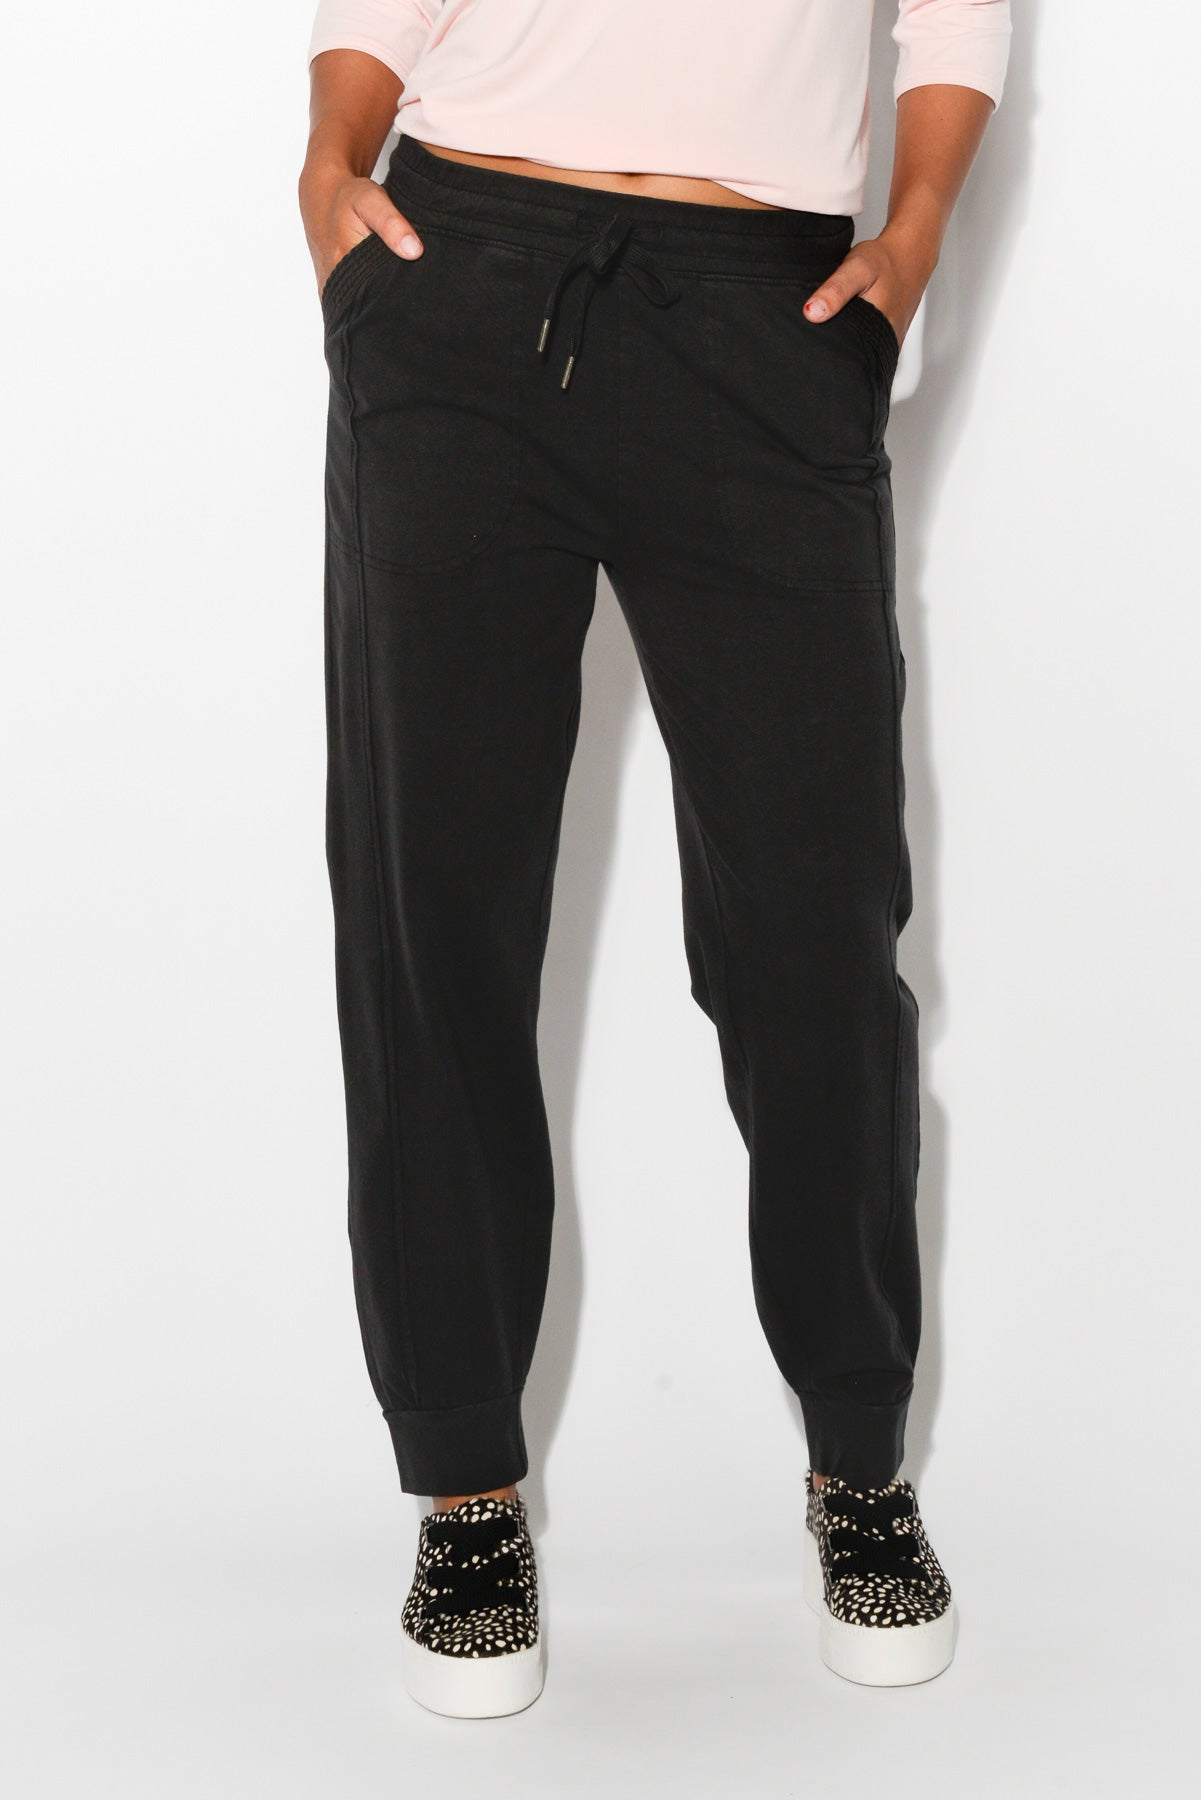 Willow Black Cotton Pant - Blue Bungalow